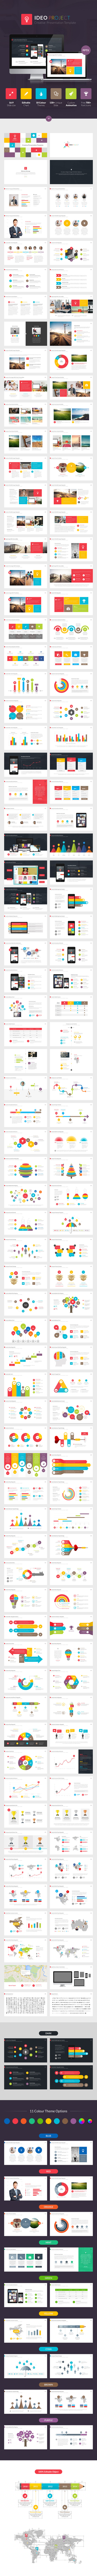 Ideo Powerpoint Presentation Template - PowerPoint Templates Presentation Templates